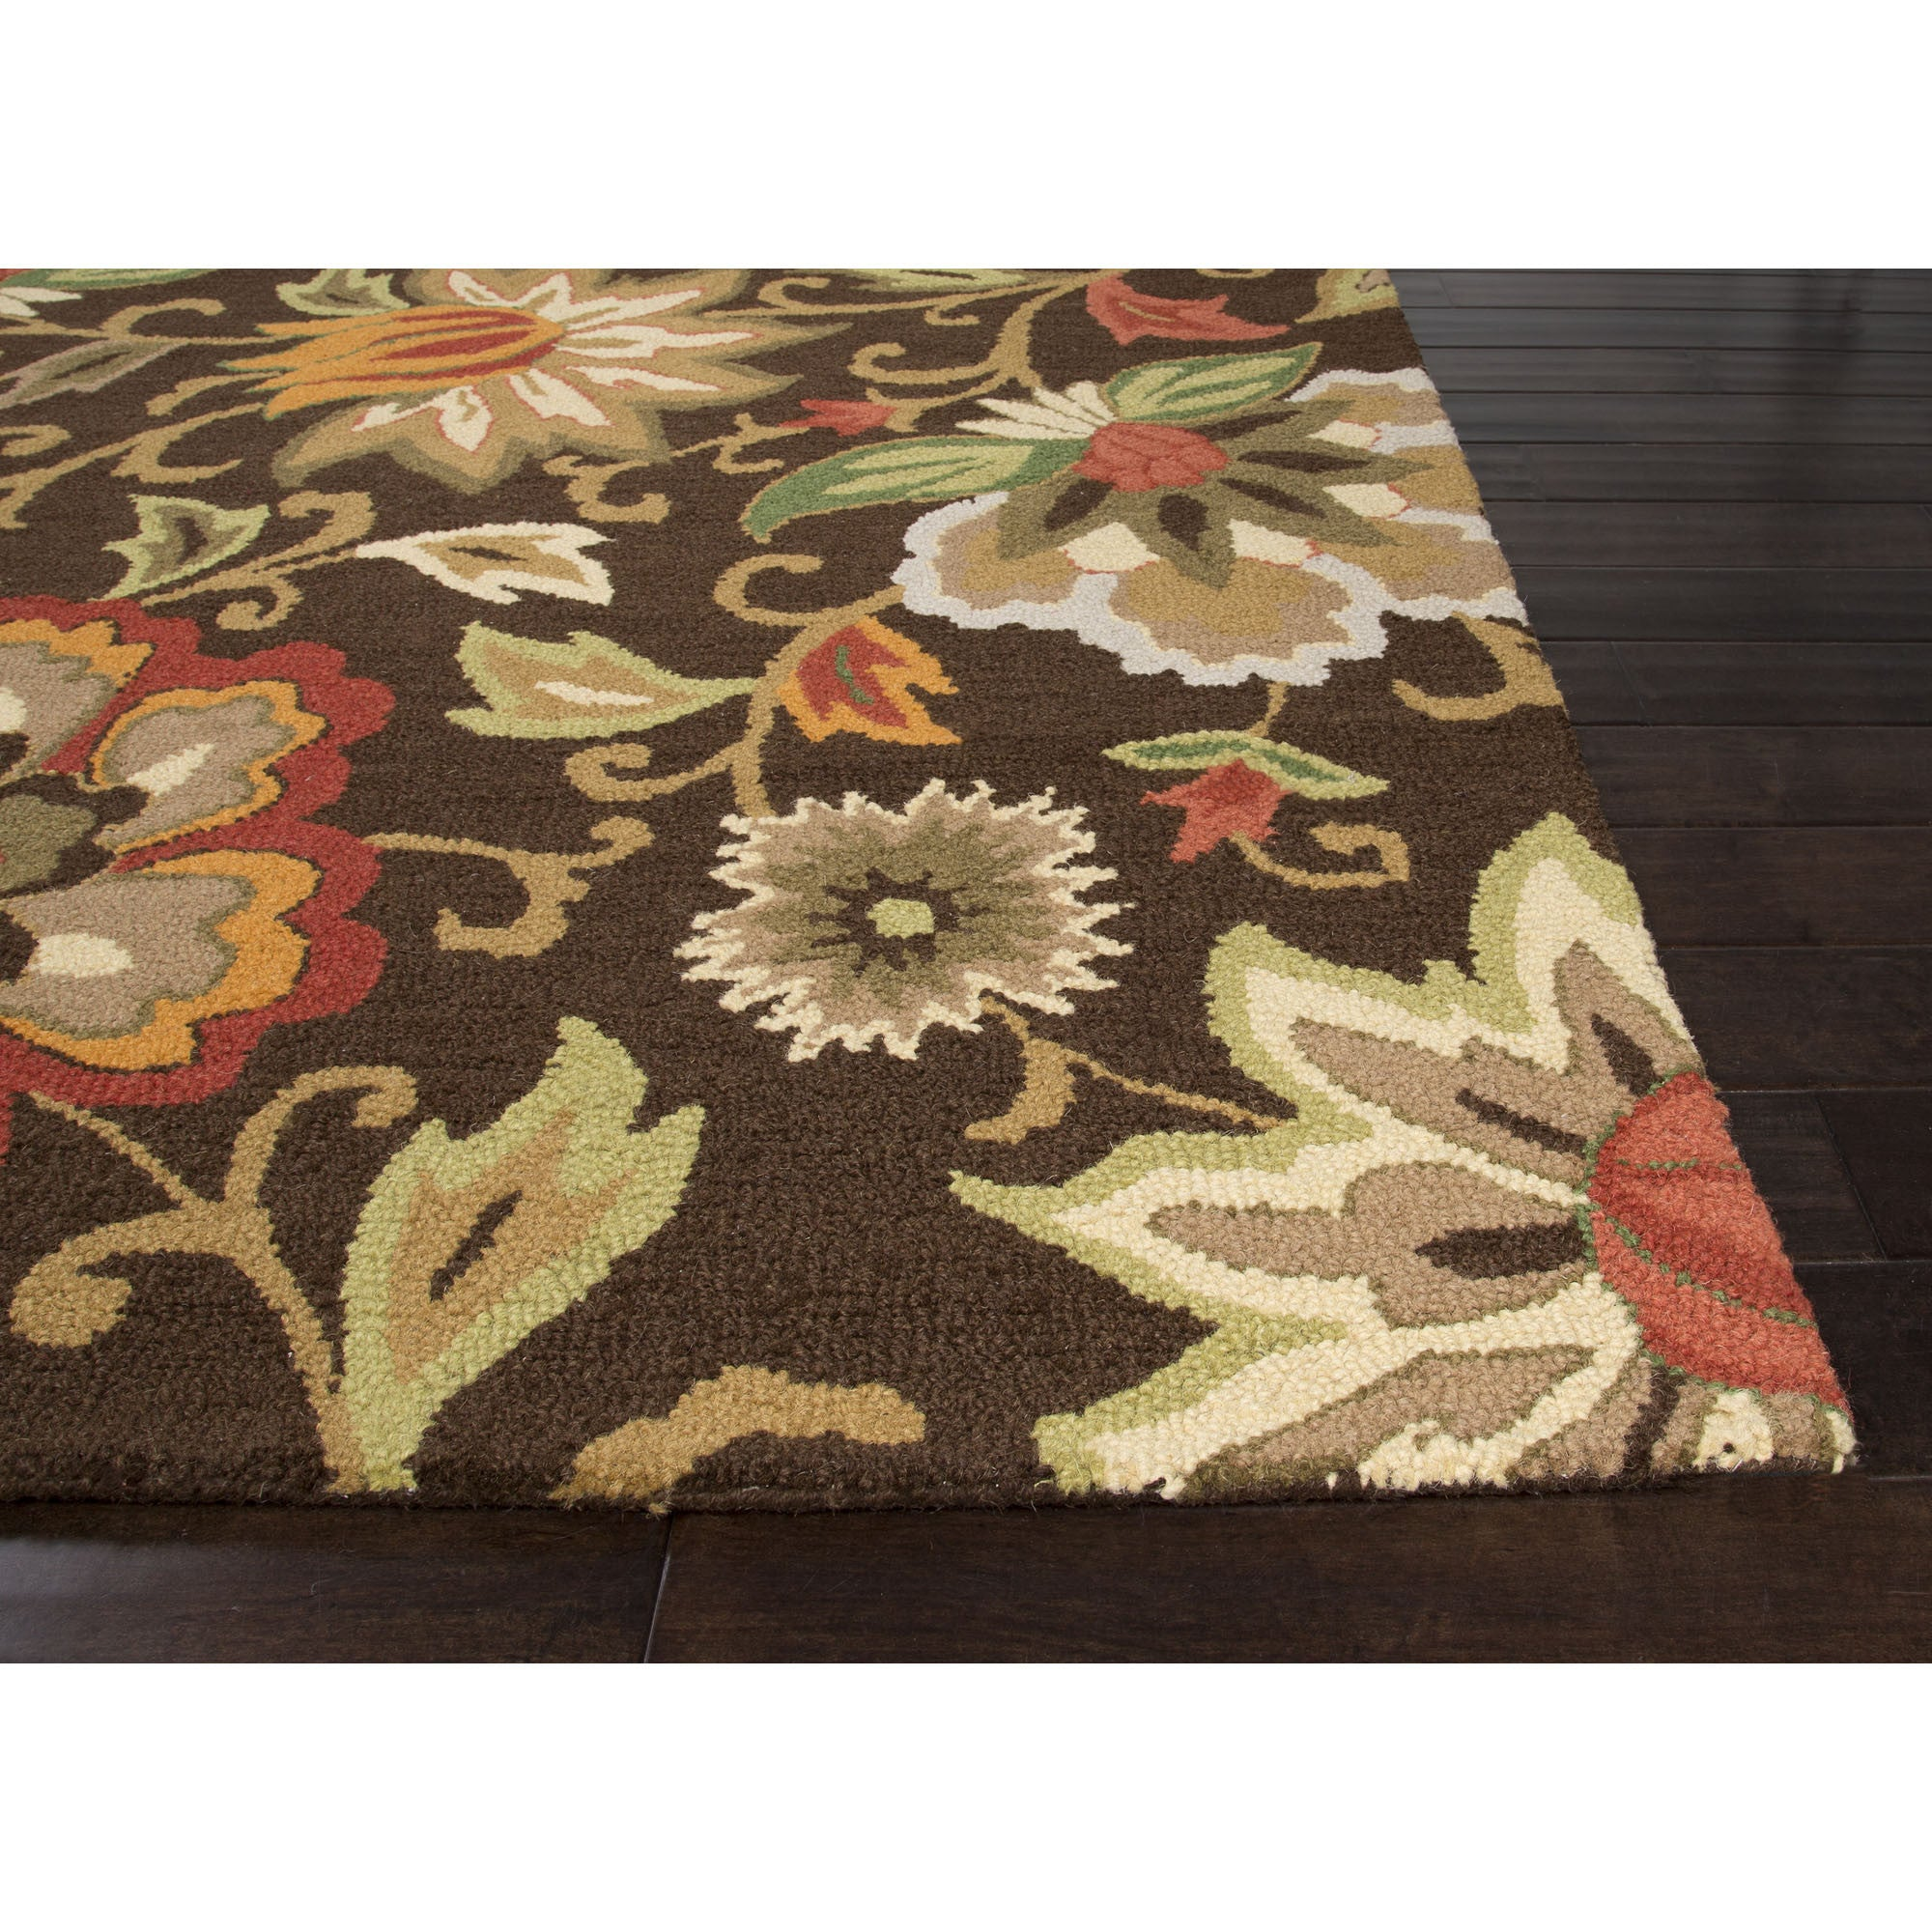 Jaipur rugs transitional floral pattern brown red wool for Red floral area rug